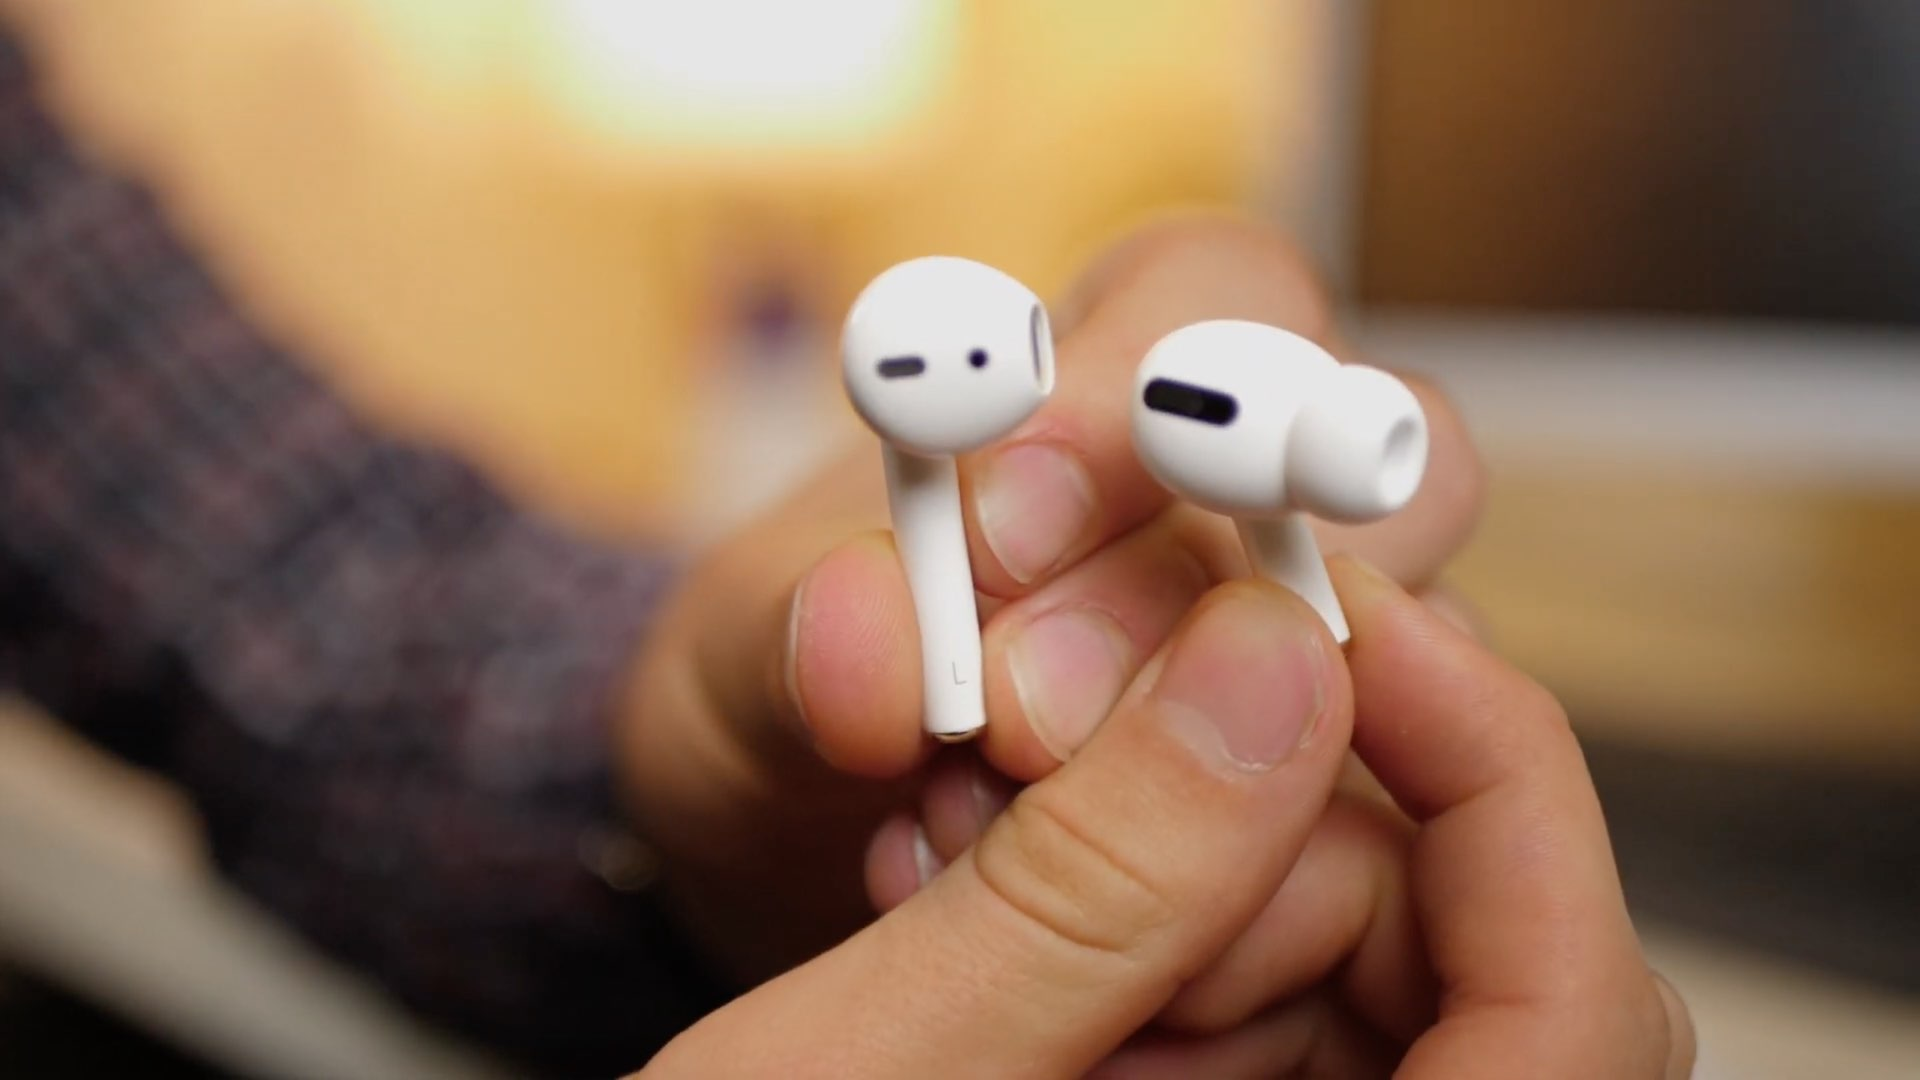 Apple Announce: AirPods Pro Get a New Firmware Update